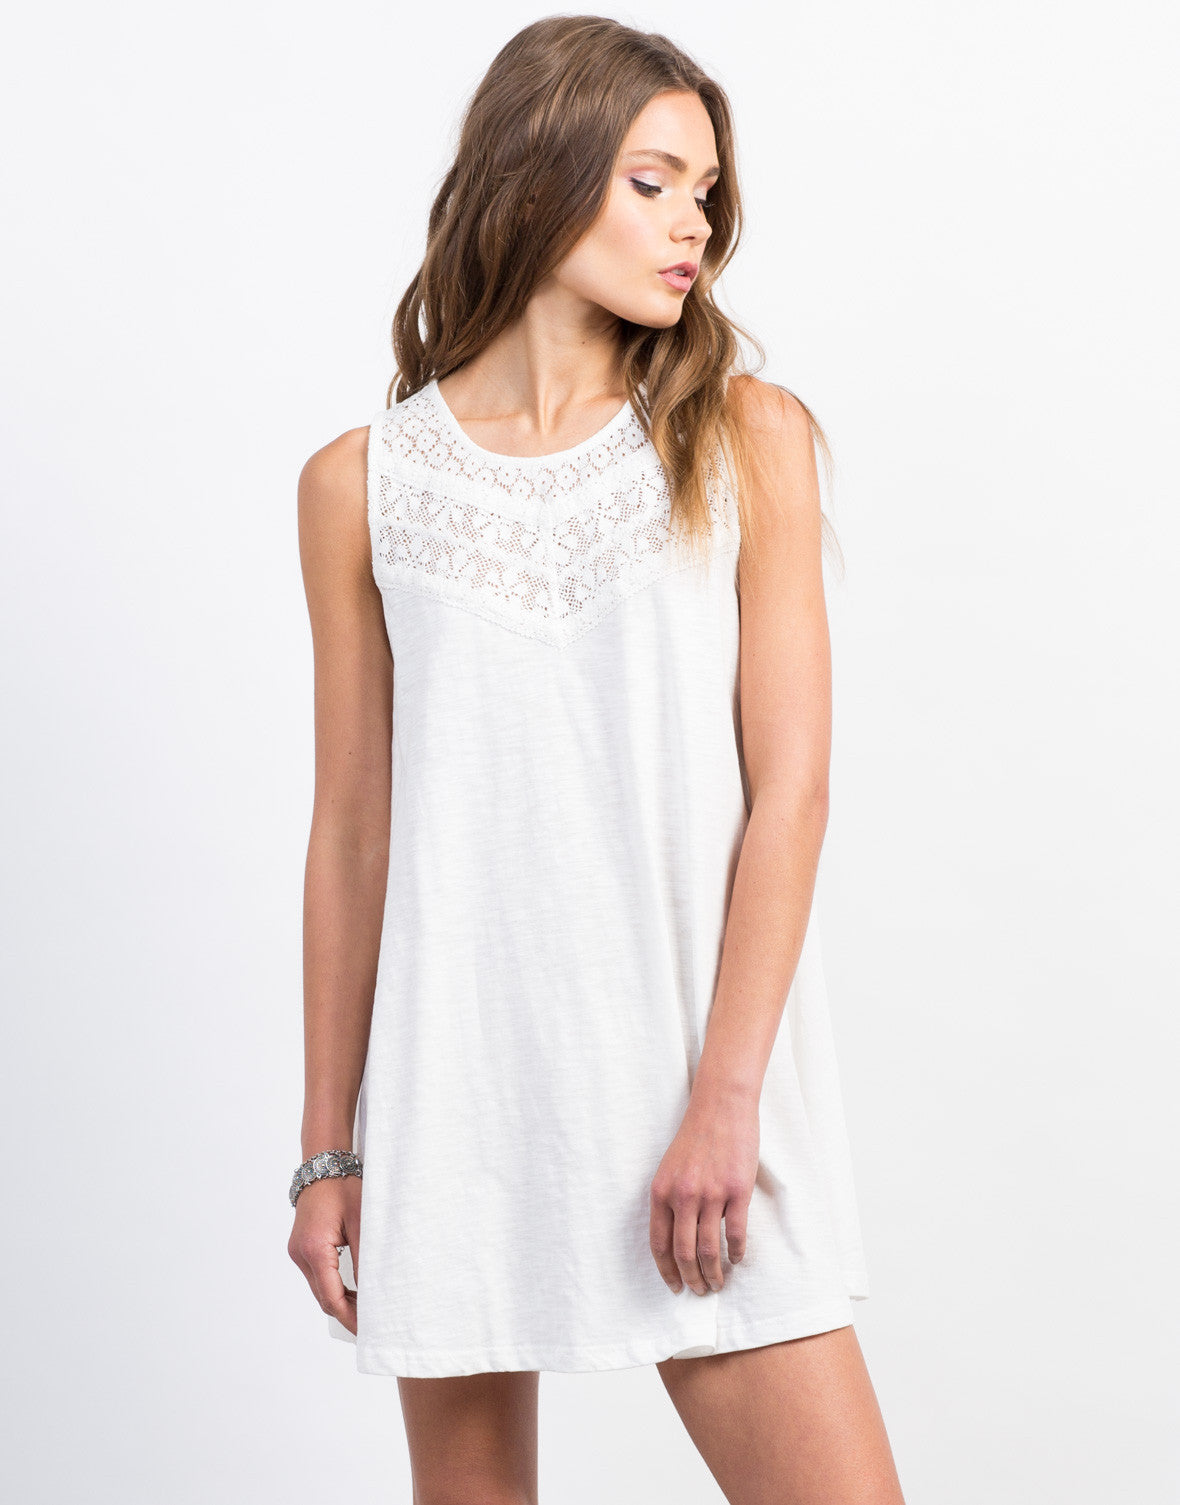 Front View of Crochet Lace Shift Dress